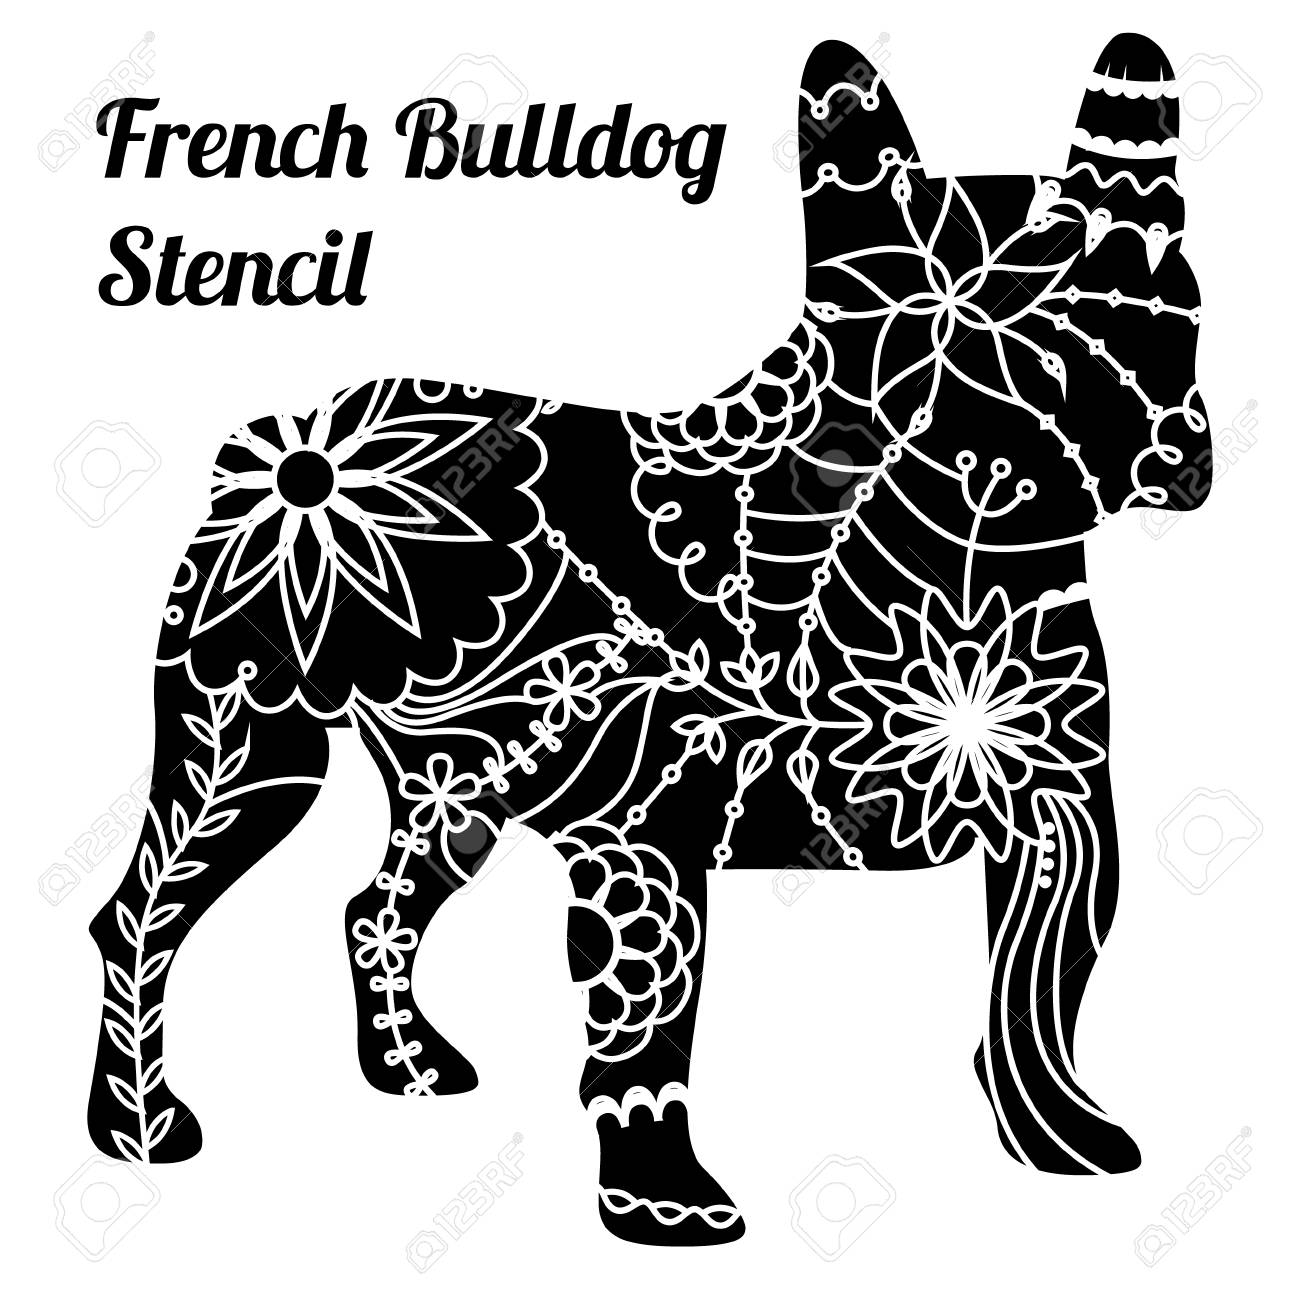 Stencil Bulldog pictures forecast to wear for spring in 2019